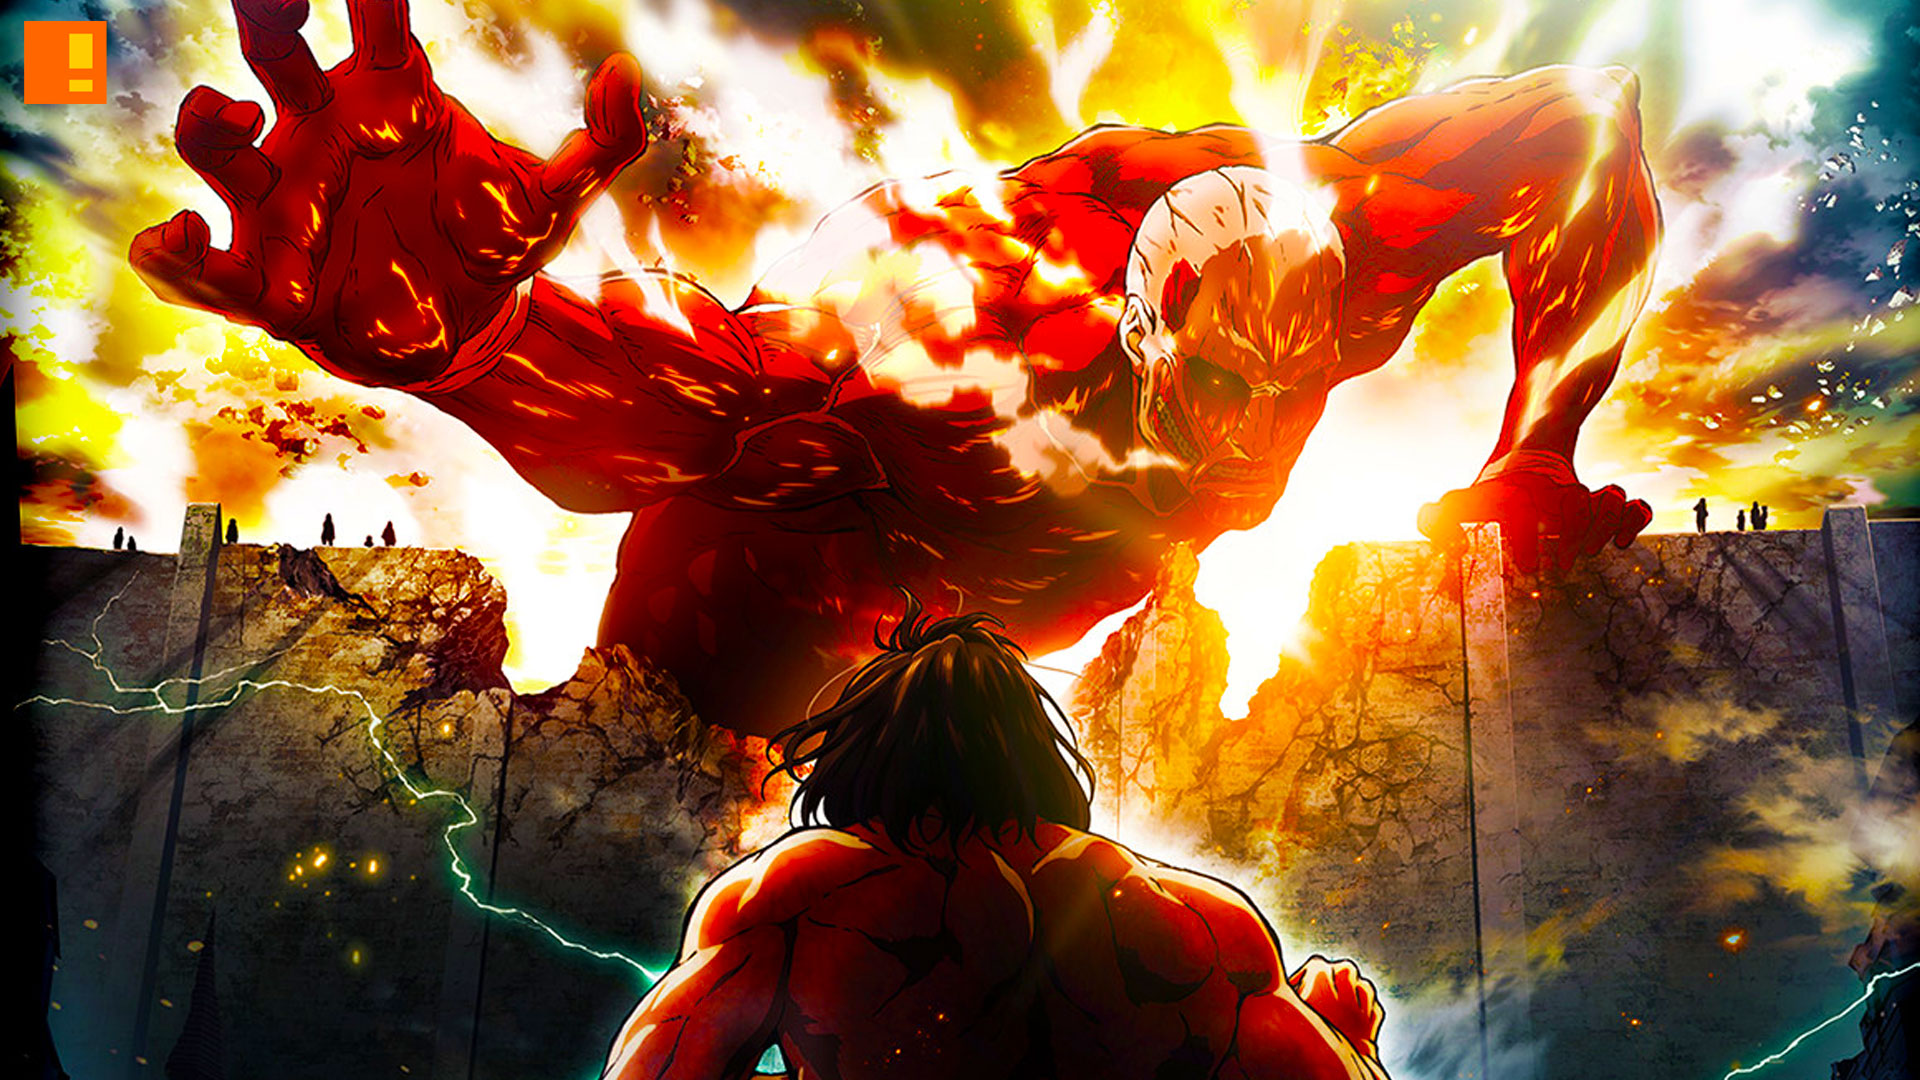 attack on titan, the action pixel, anime, manga, season 2, entertainment on tap, the action pixel, shingeki, season 2,